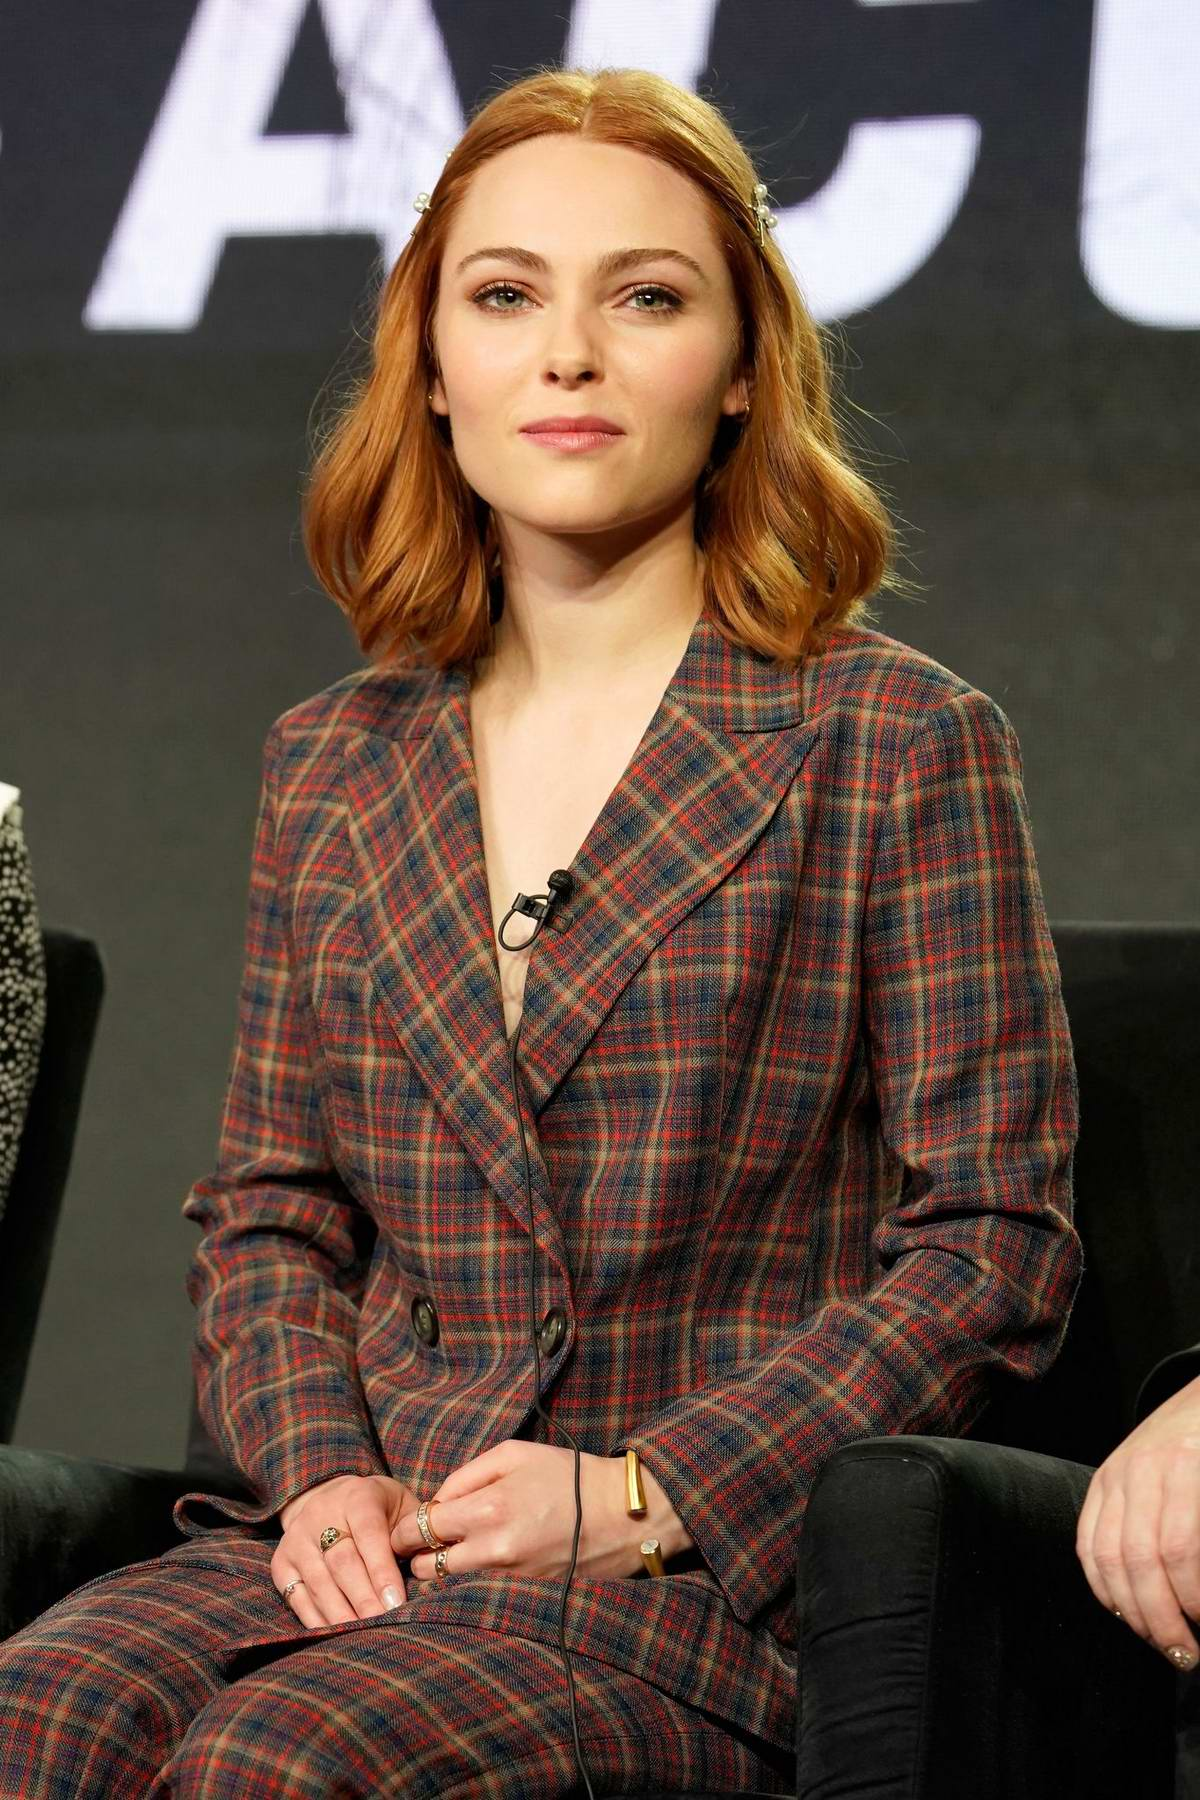 AnnaSophia Robb attends the Hulu Panel during the Winter TCA in Pasadena, California